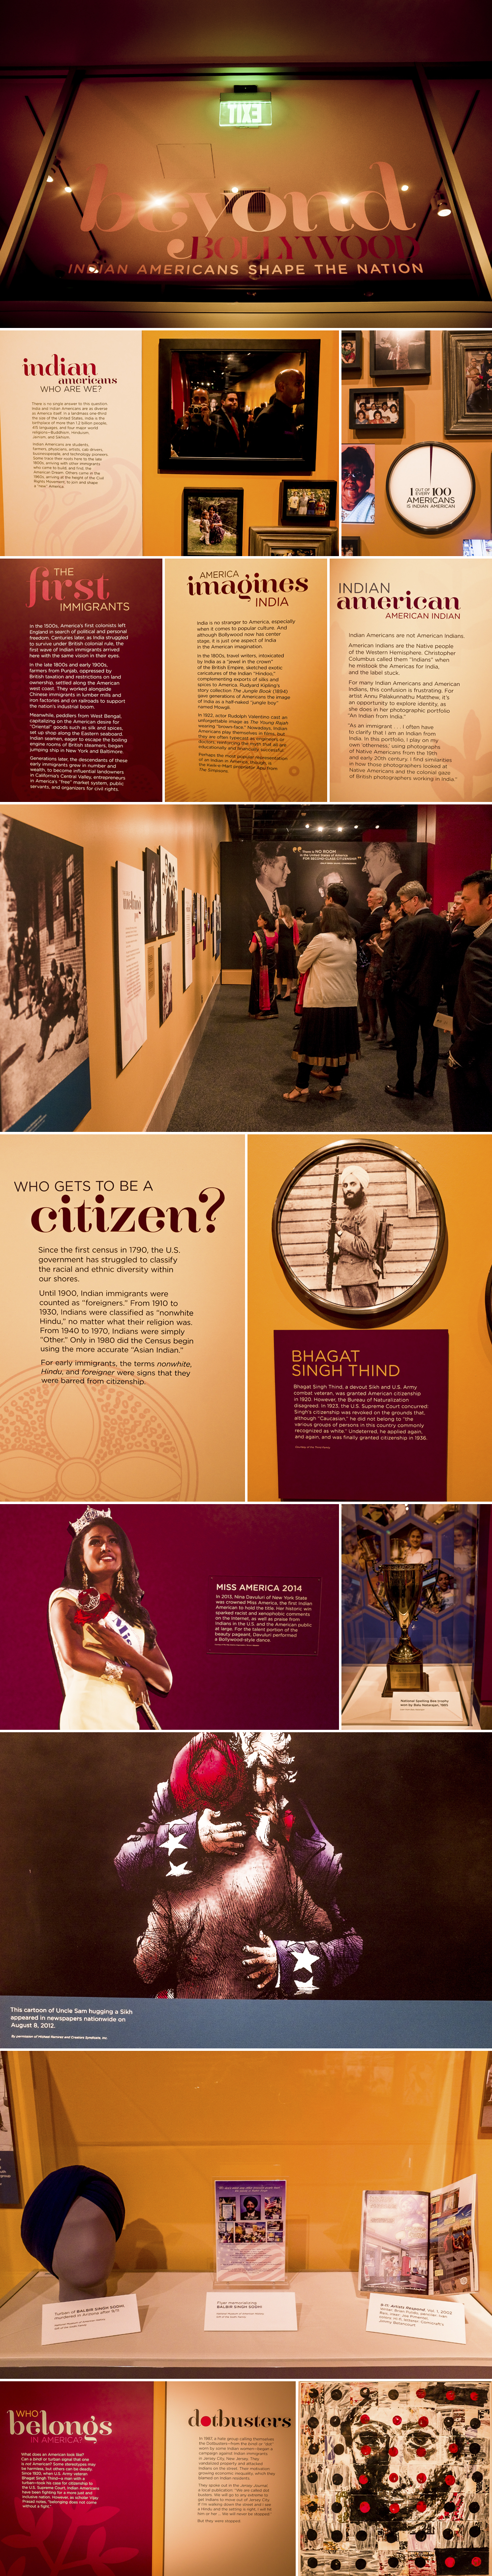 MP Singh photography Smithsonian exhibition